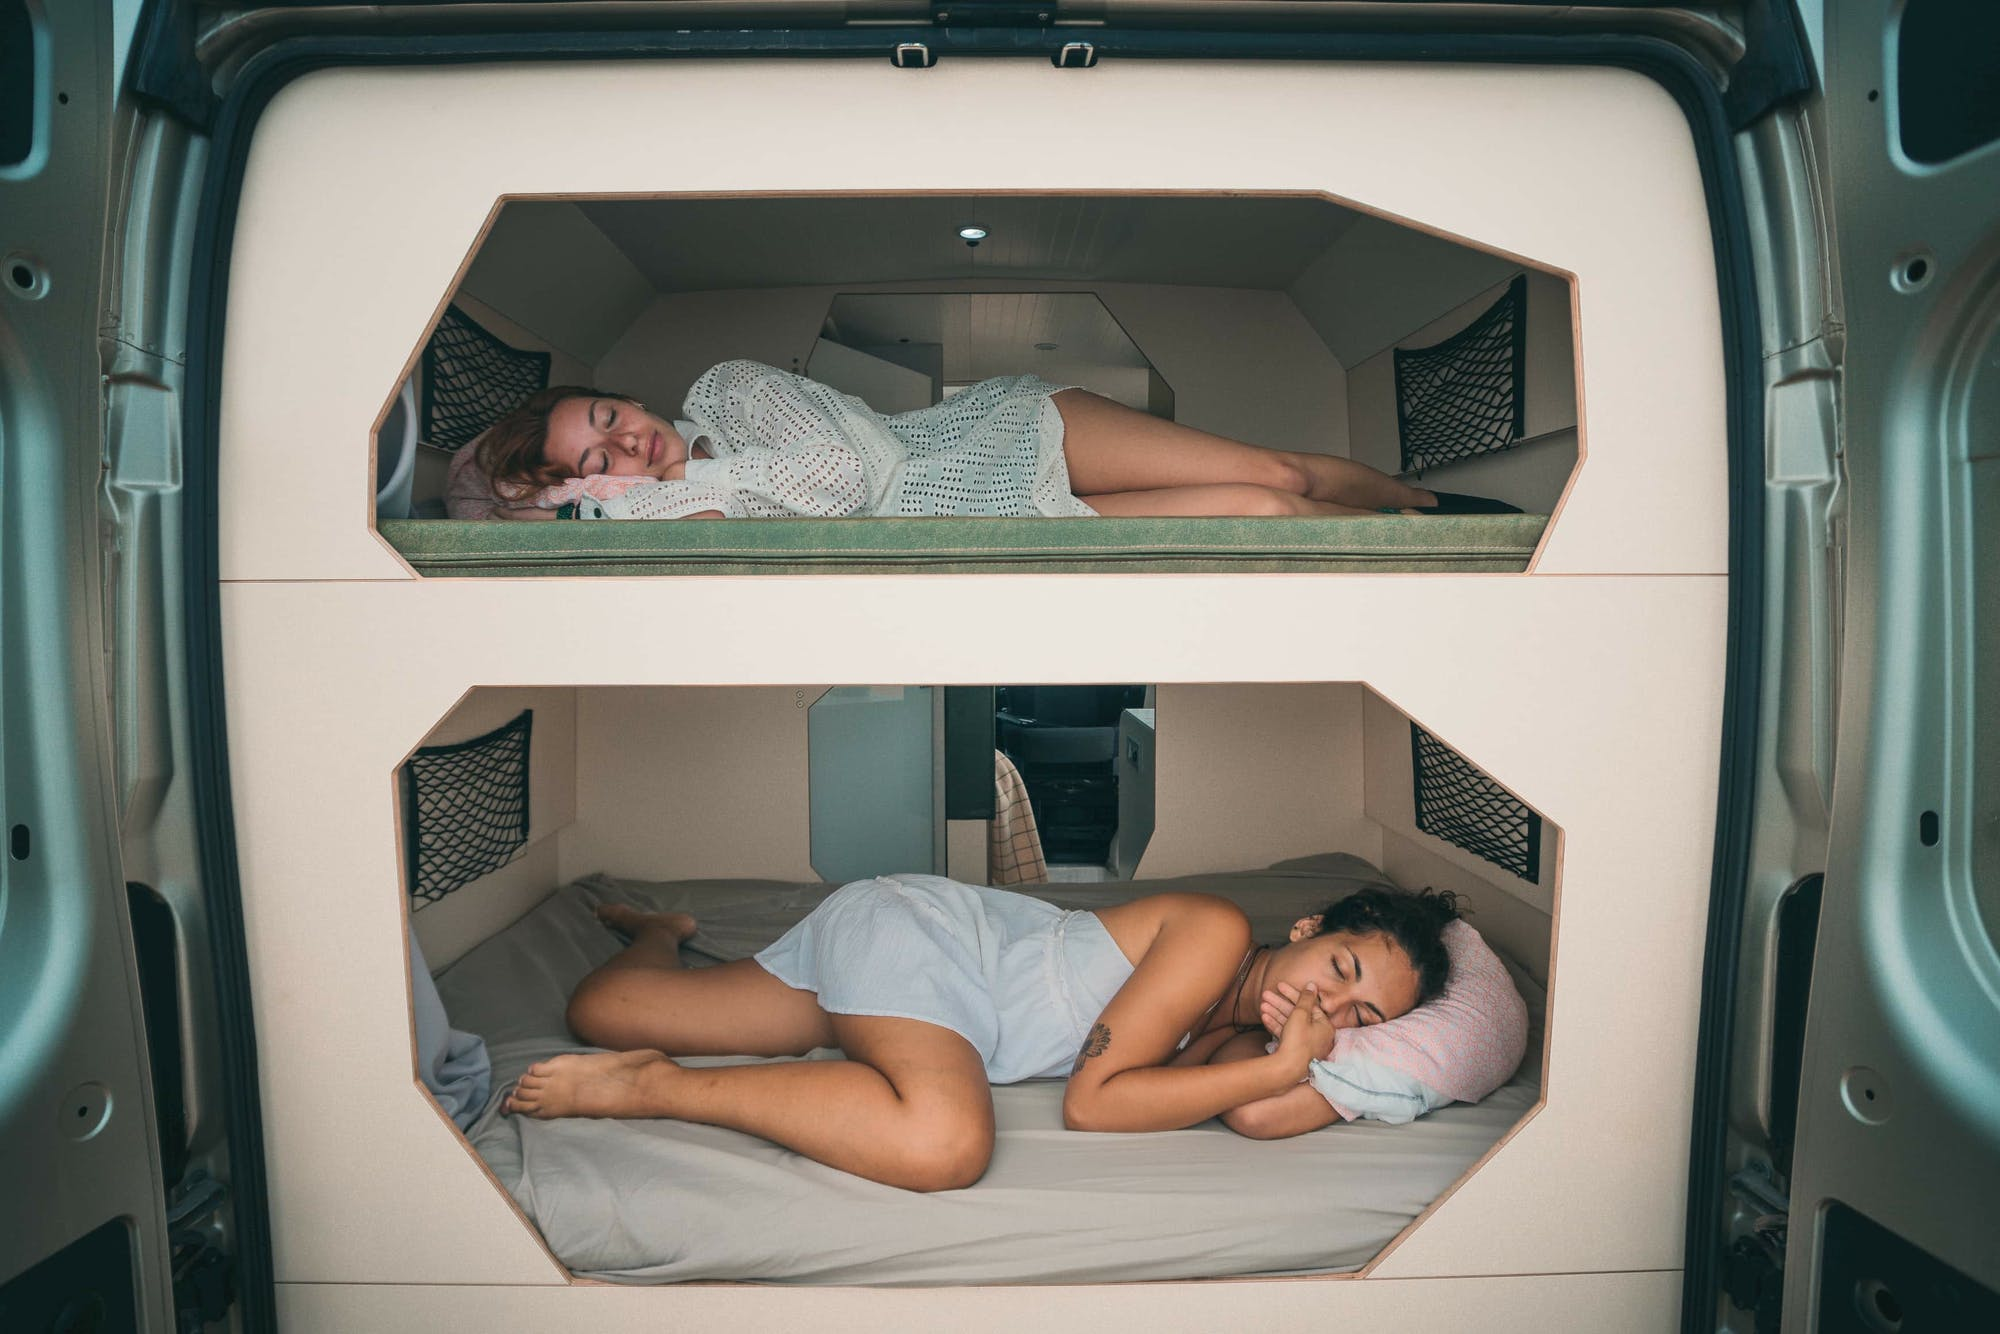 Two women each one on their own bed inside the Active Model